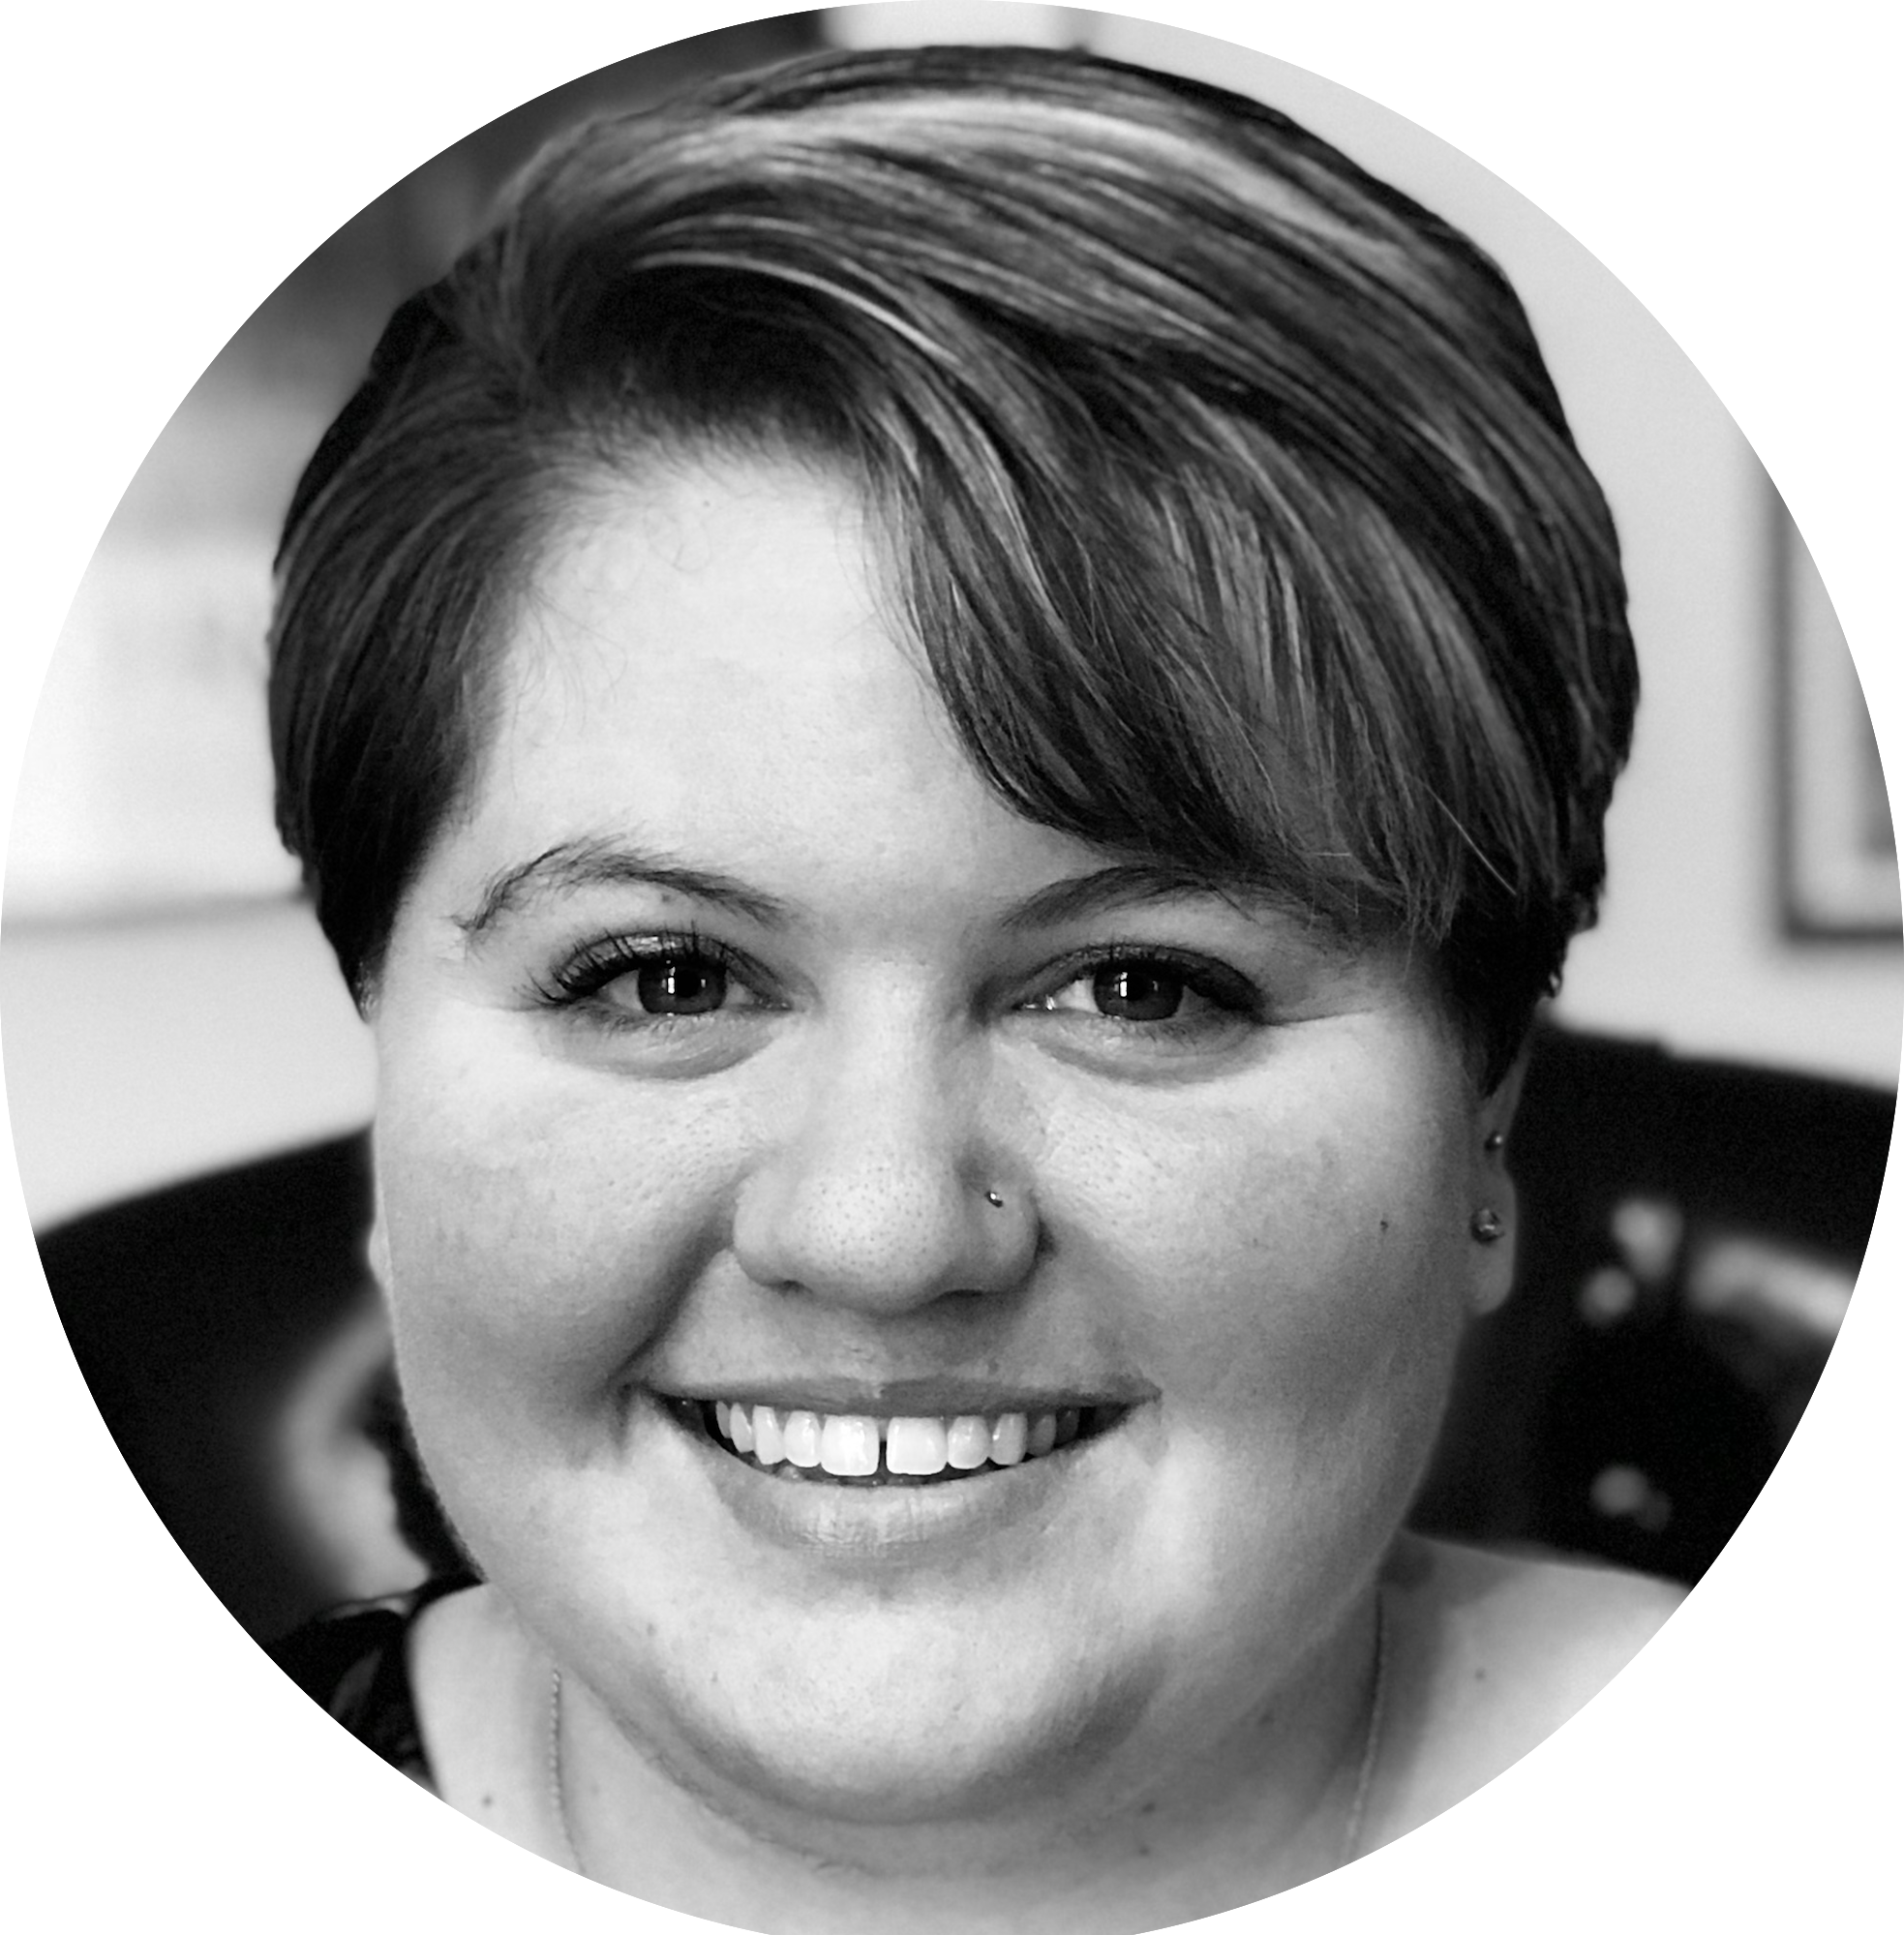 Beth has been with the Southwest Council, Inc. since 2016 and serves as an Alcohol, Tobacco and Other Drug Prevention Specialist. Beth provides evidence-based school and community-wide programs in Gloucester County.